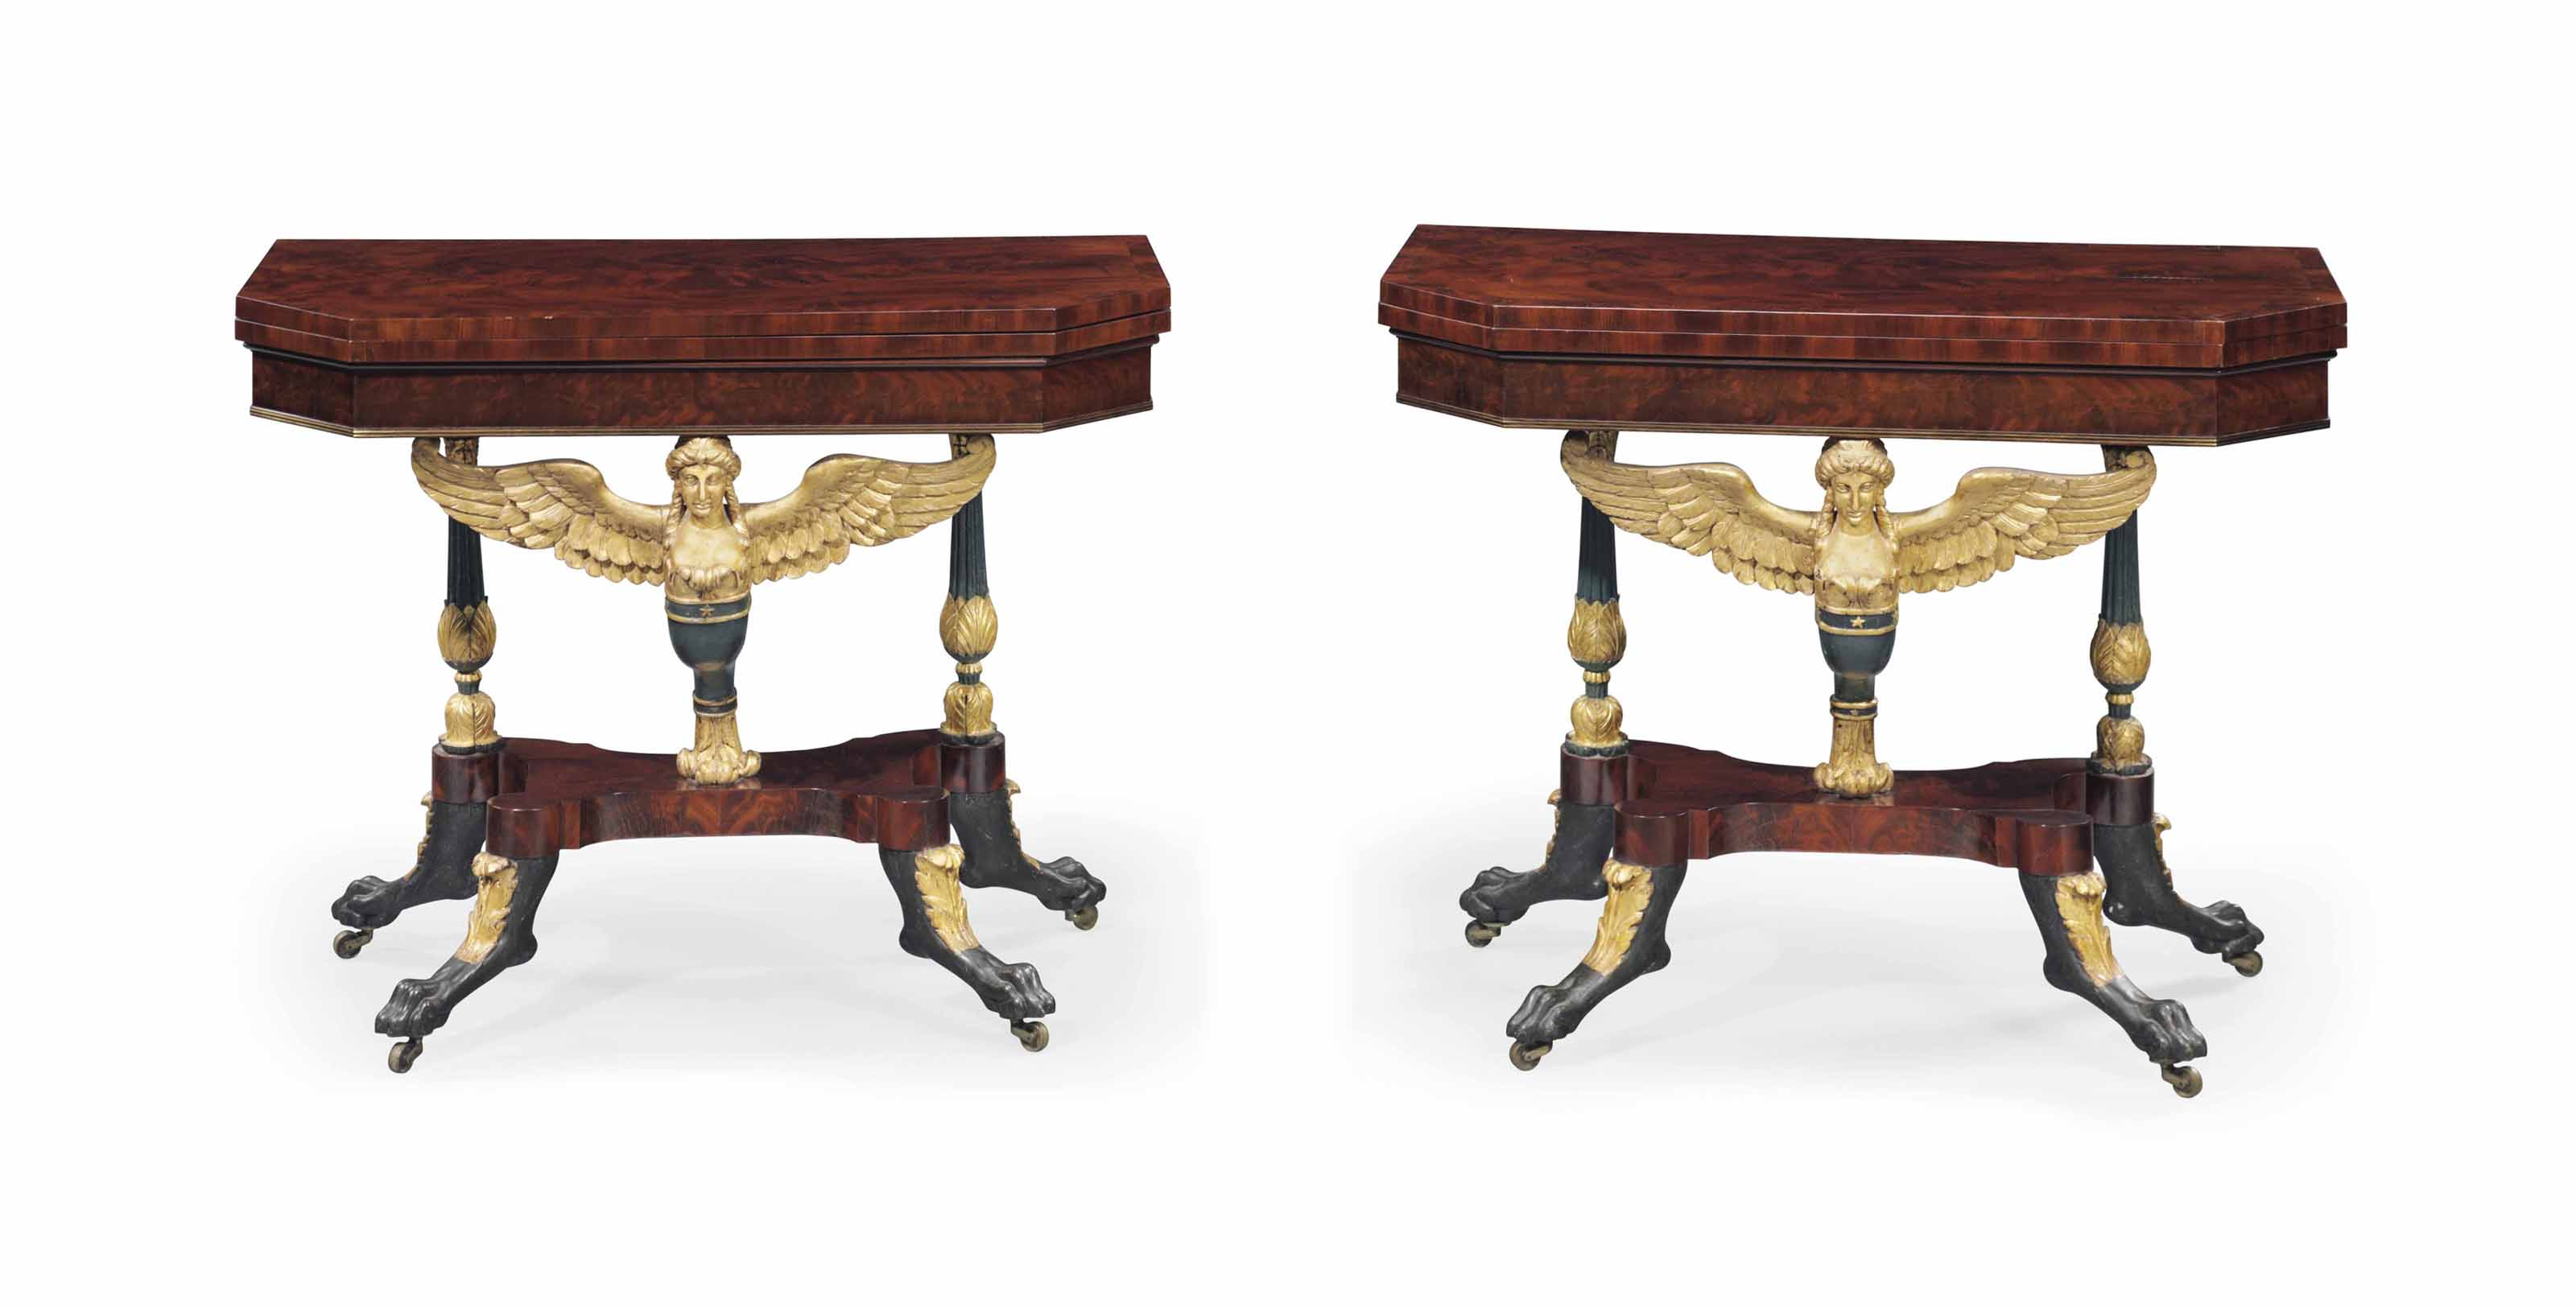 A PAIR OF CLASSICAL PARCEL-GILT, VERDIGRIS AND BRASS-INLAID MAHOGANY CARYATID CARD TABLES